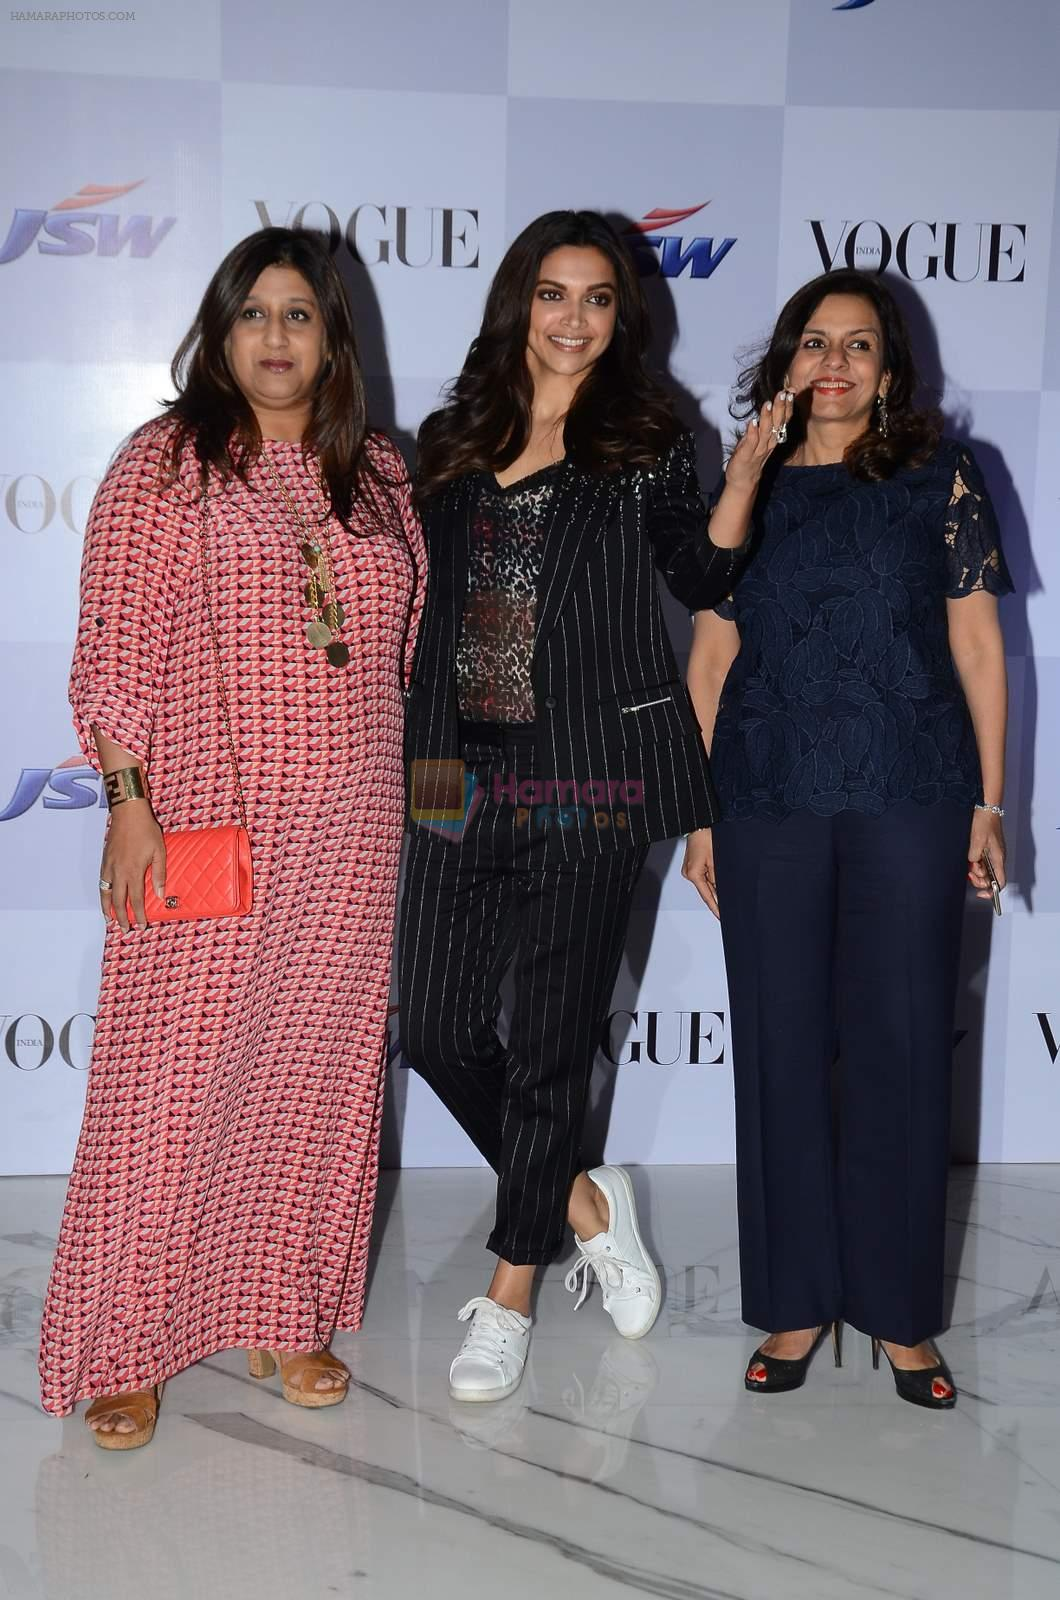 Deepika Padukone at My Choice film by Vogue in Bandra, Mumbai on 28th March 2015